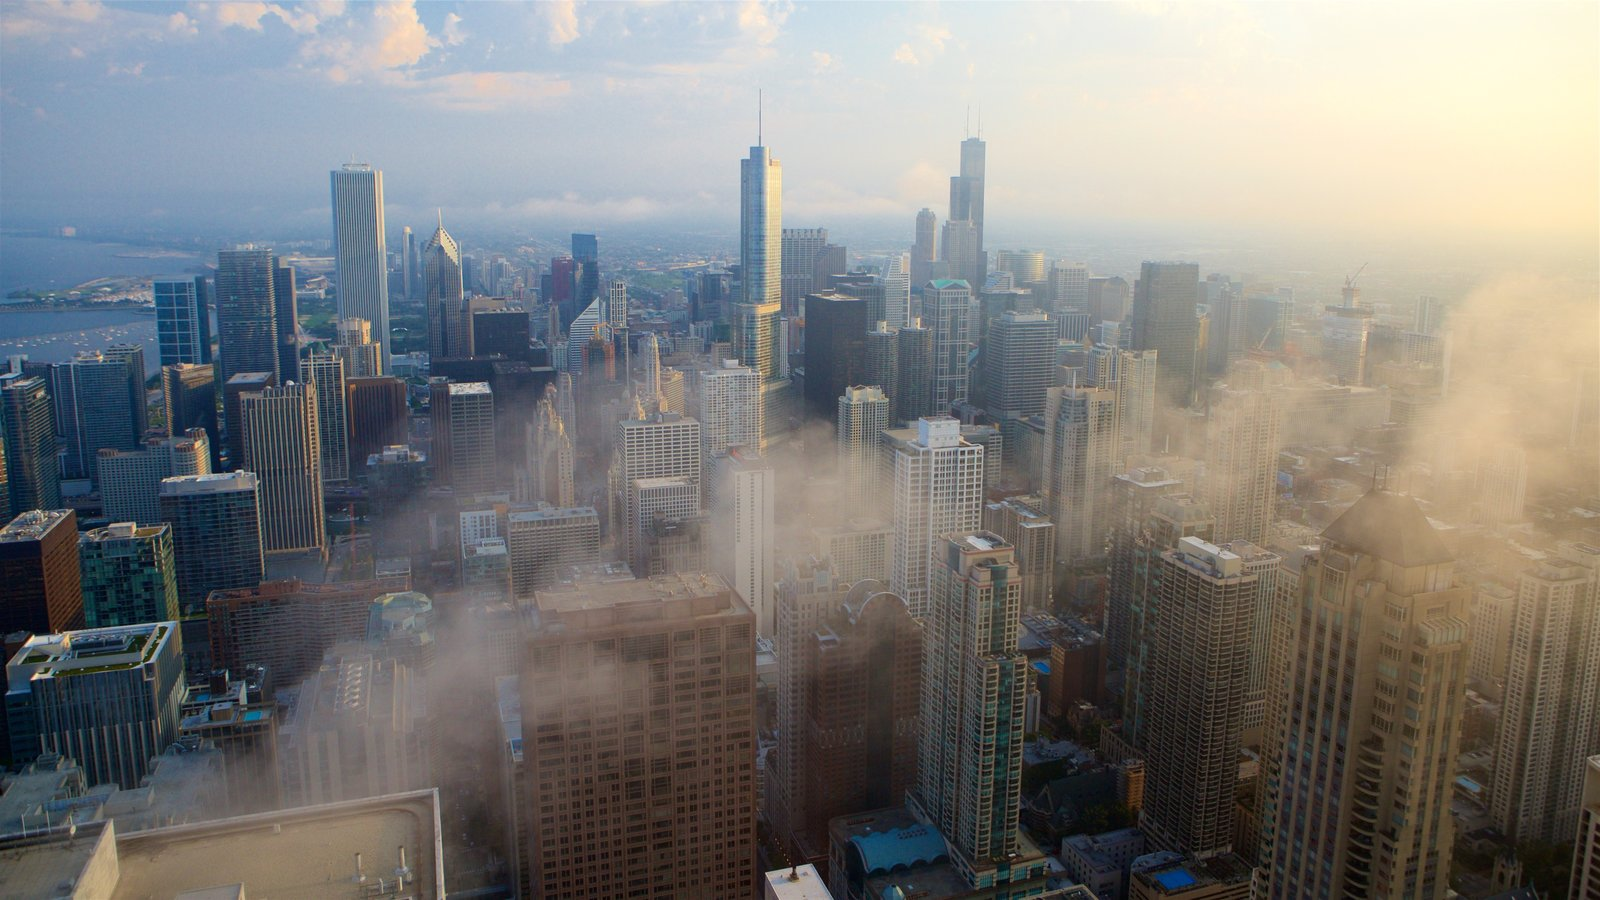 Willis Tower featuring mist or fog, a skyscraper and a city